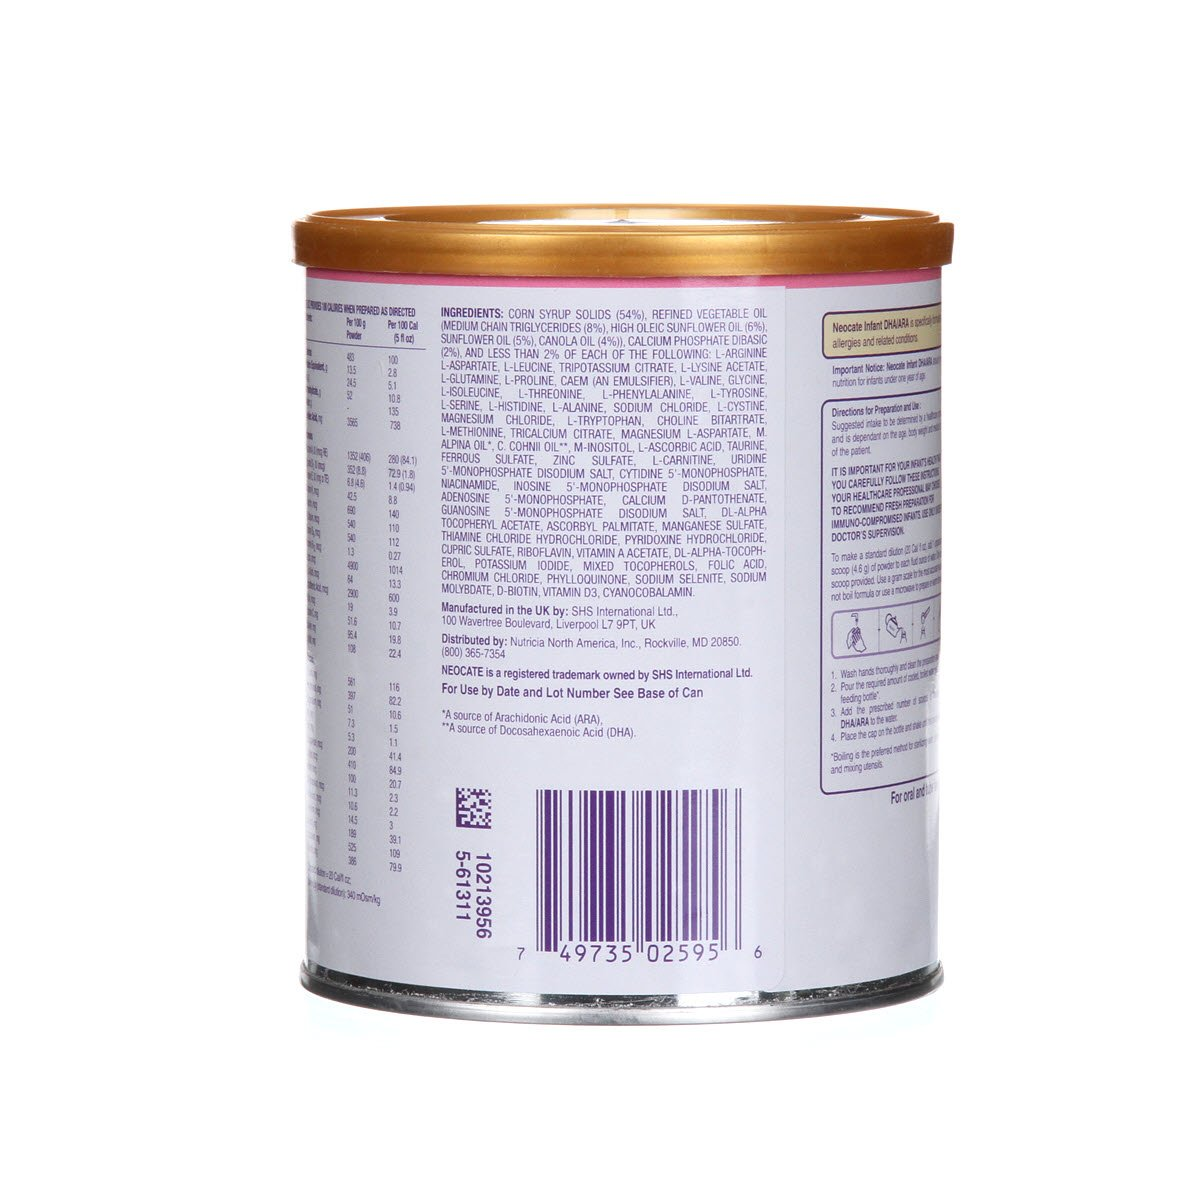 Neocate Infant With Dha and Ara, 14.1 Ounce / 400 Gram (1 Can) by Neocate (Image #3)